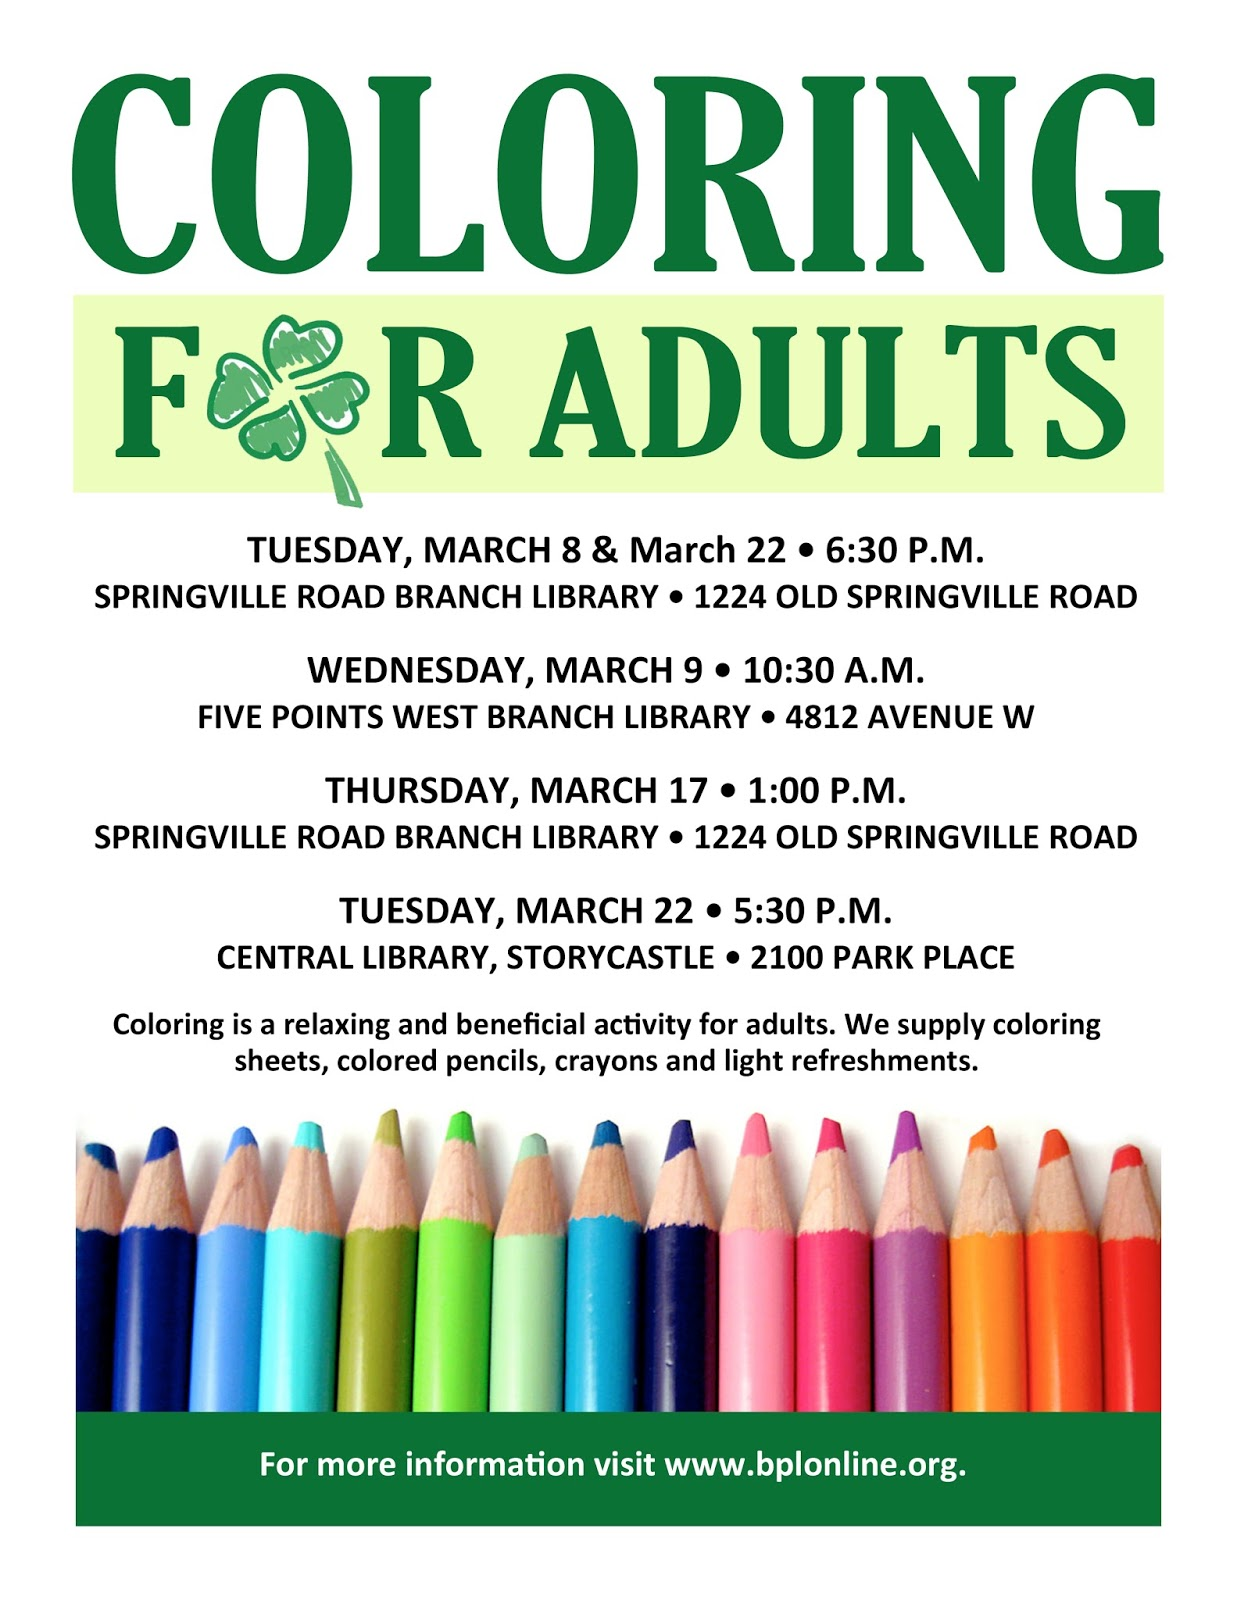 coloring for adults flyer